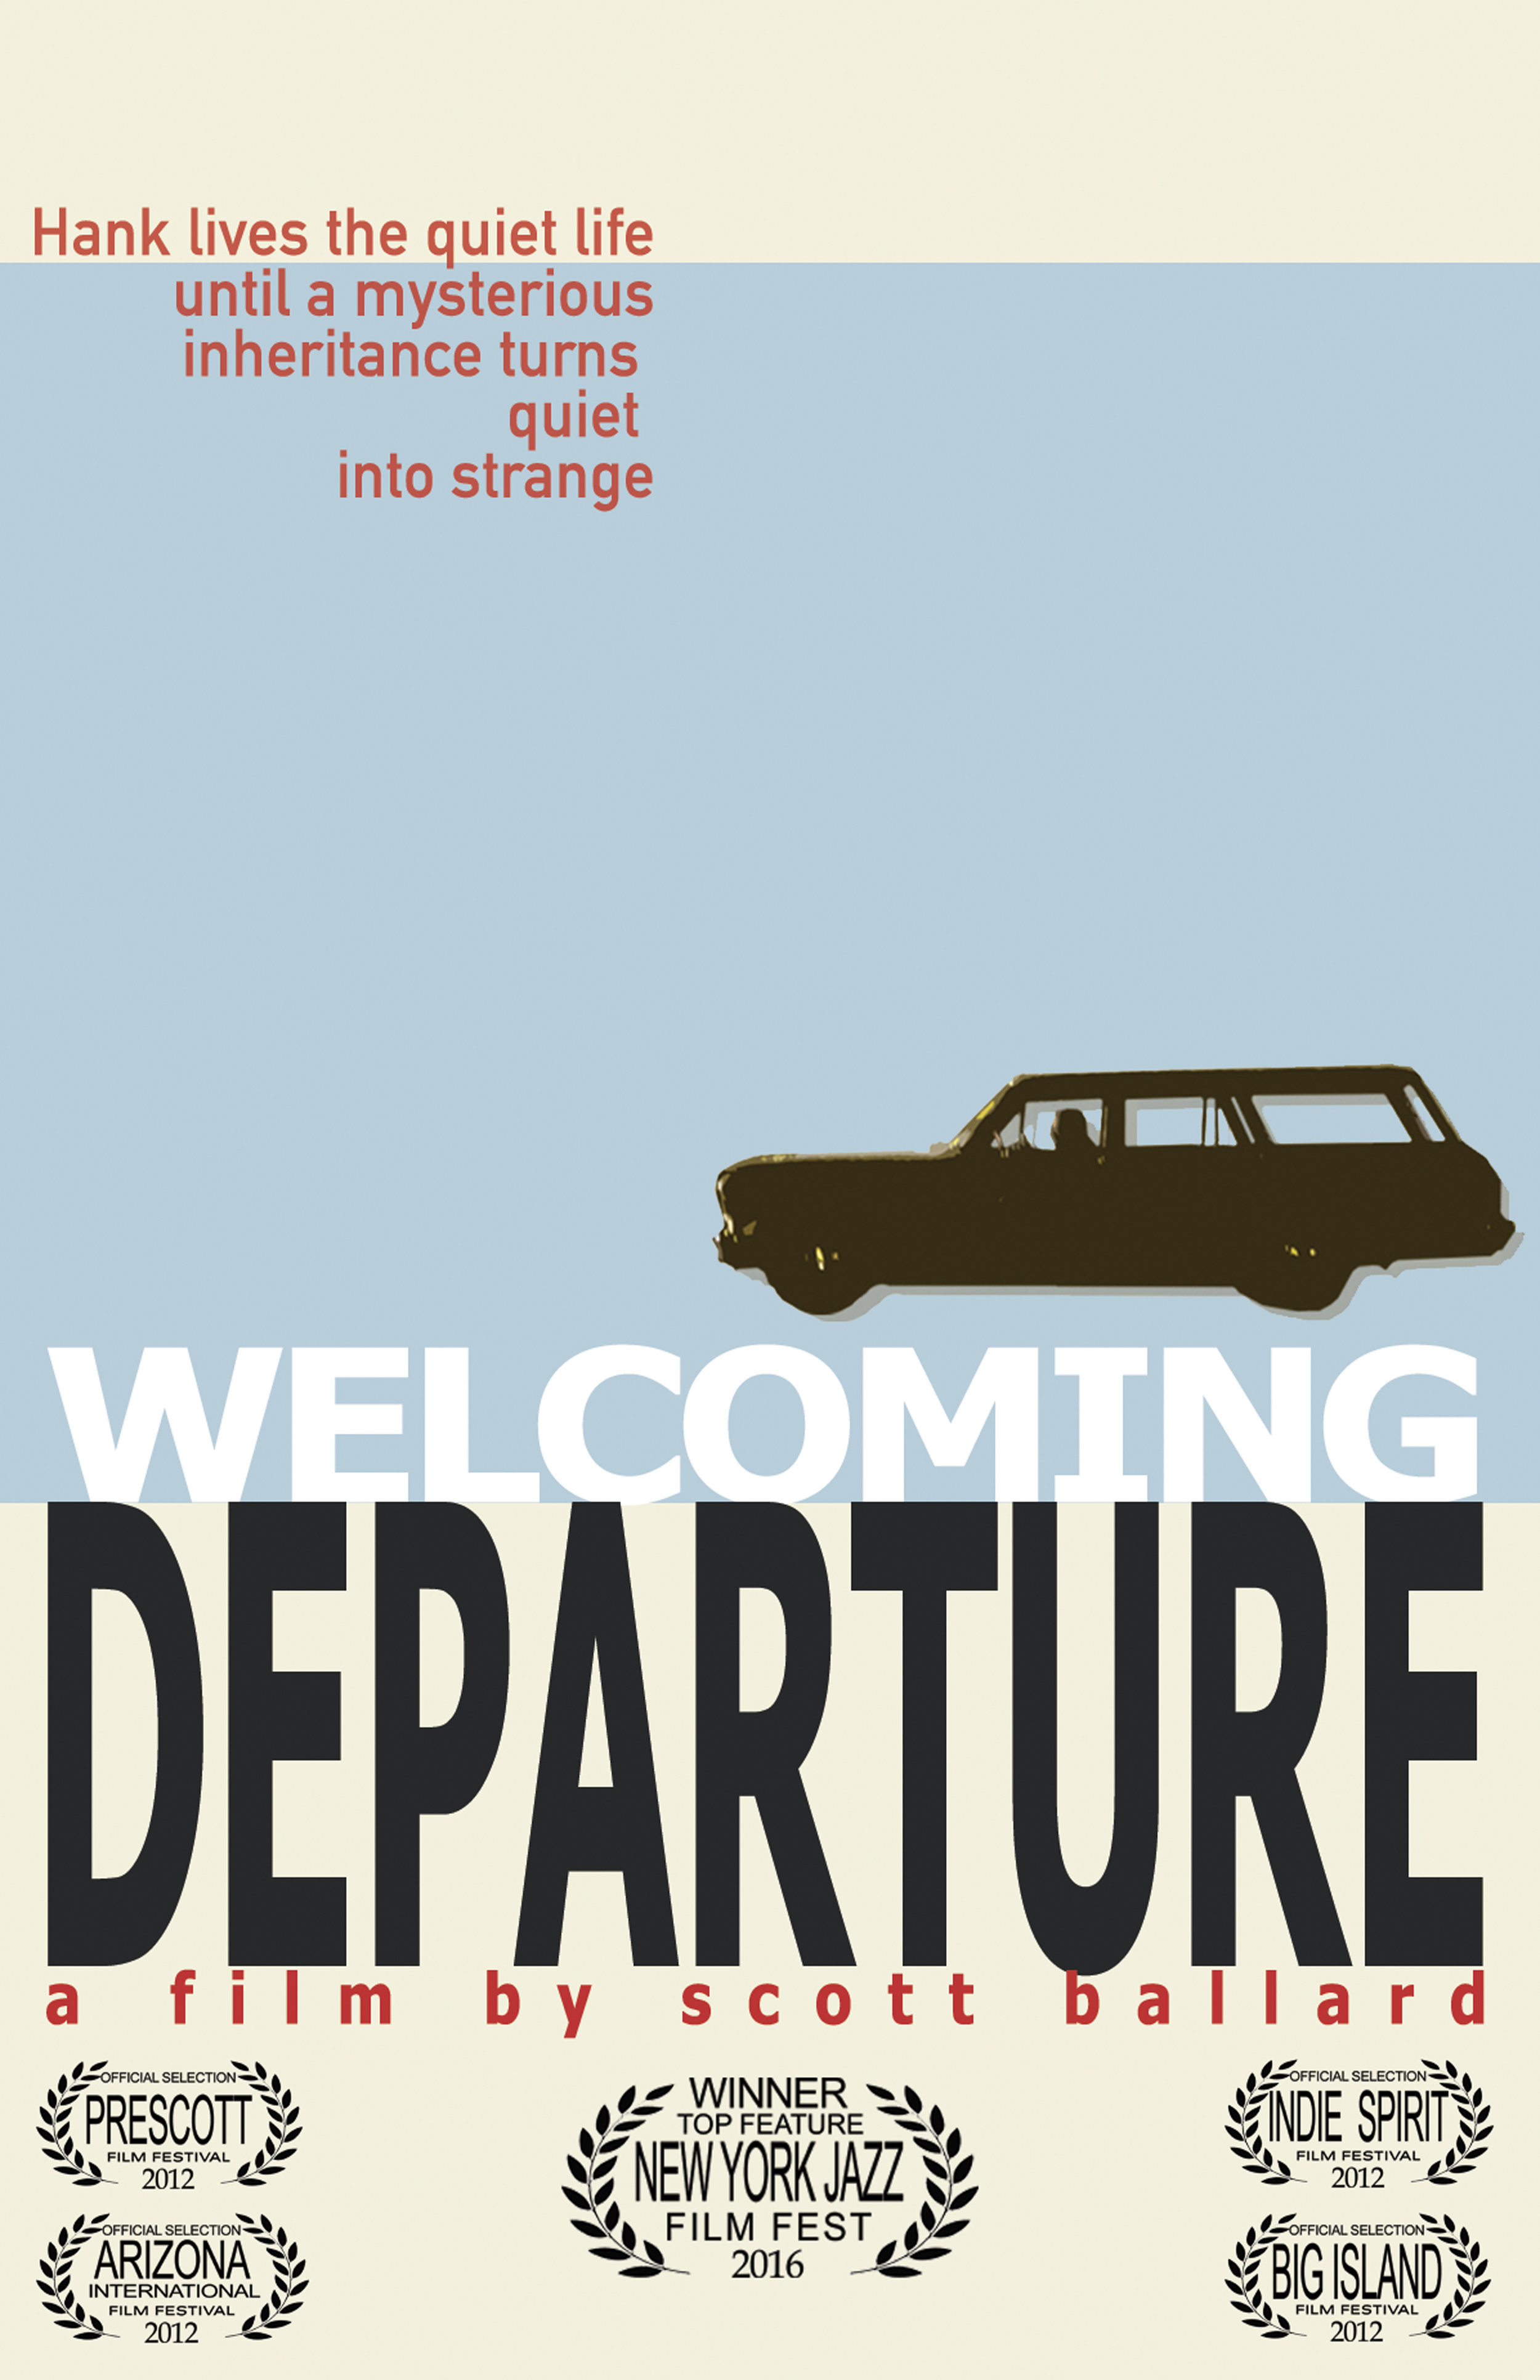 Welcoming Departure - Written, Directed, Produced & Edited by Scott BallardFeature Film - 2012 - 68 MinutesHank enjoys the quiet life. As a night custodian his evenings are sequestered in a methodical work routine. With the arrival of a mysterious elderly Norwegian woman, the patterns of his life begin to unravel. Heartwarming, heartbreaking and funny, Welcoming Departure is a jazz inspired portrait exploring the challenges of change.